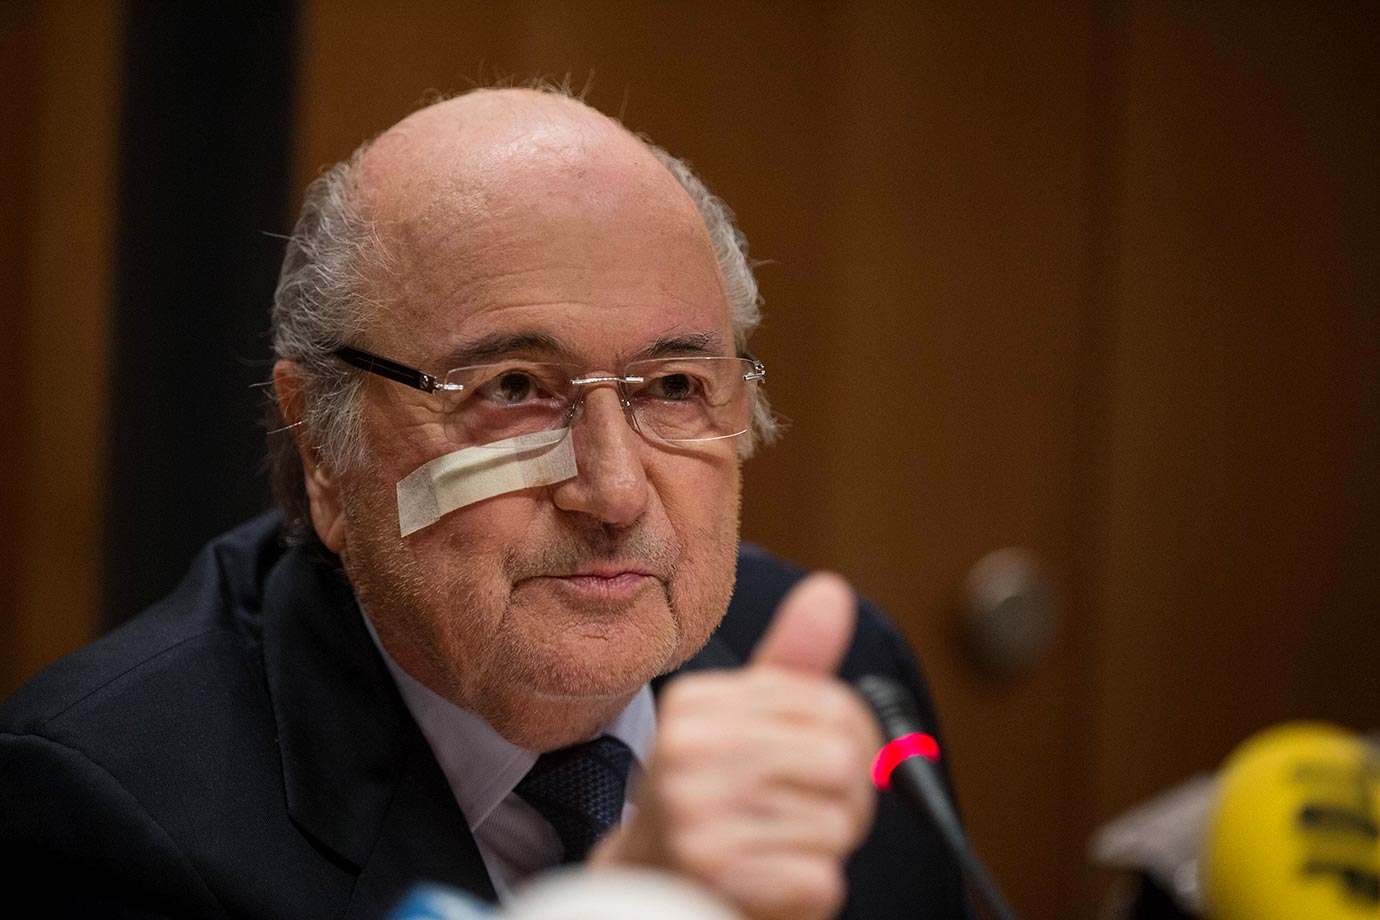 FIFA's suspended (and apparently roughed up) president Sepp Blatter says that he will fight his eight-year ban.